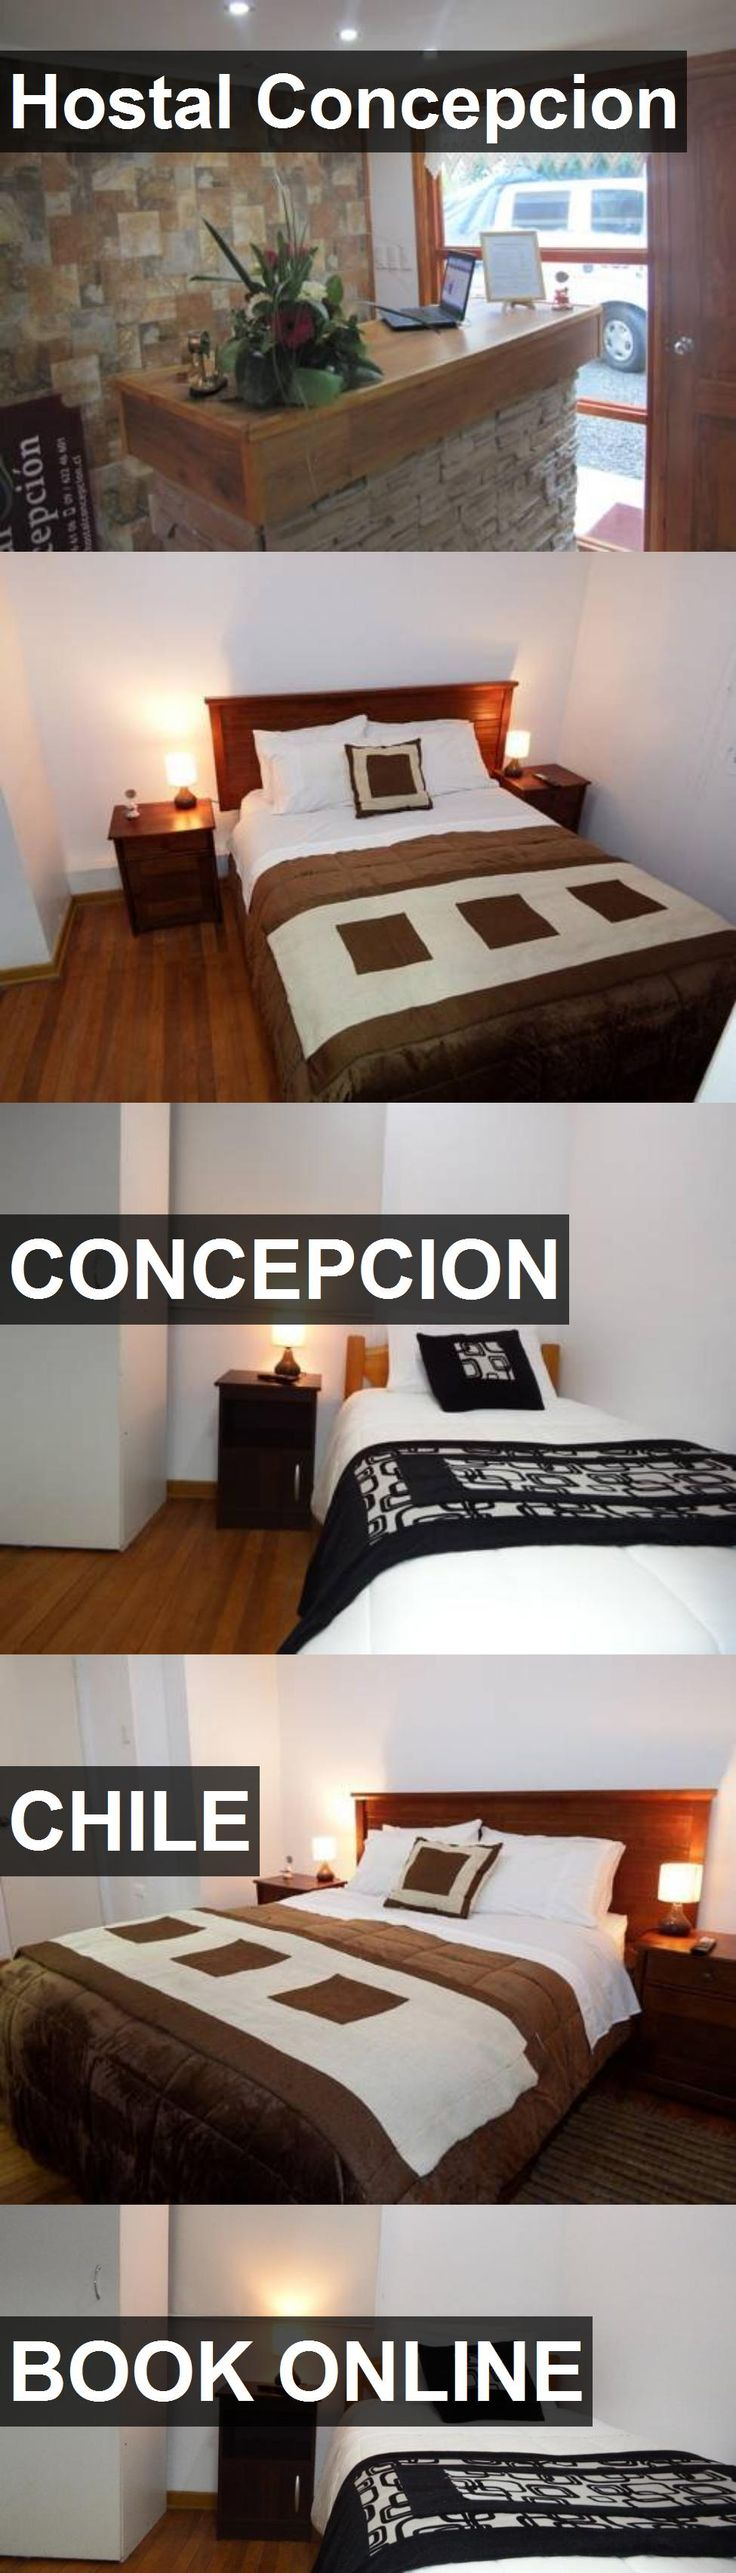 Hotel Hostal Concepcion in Concepcion, Chile. For more information, photos, reviews and best prices please follow the link. #Chile #Concepcion #travel #vacation #hotel